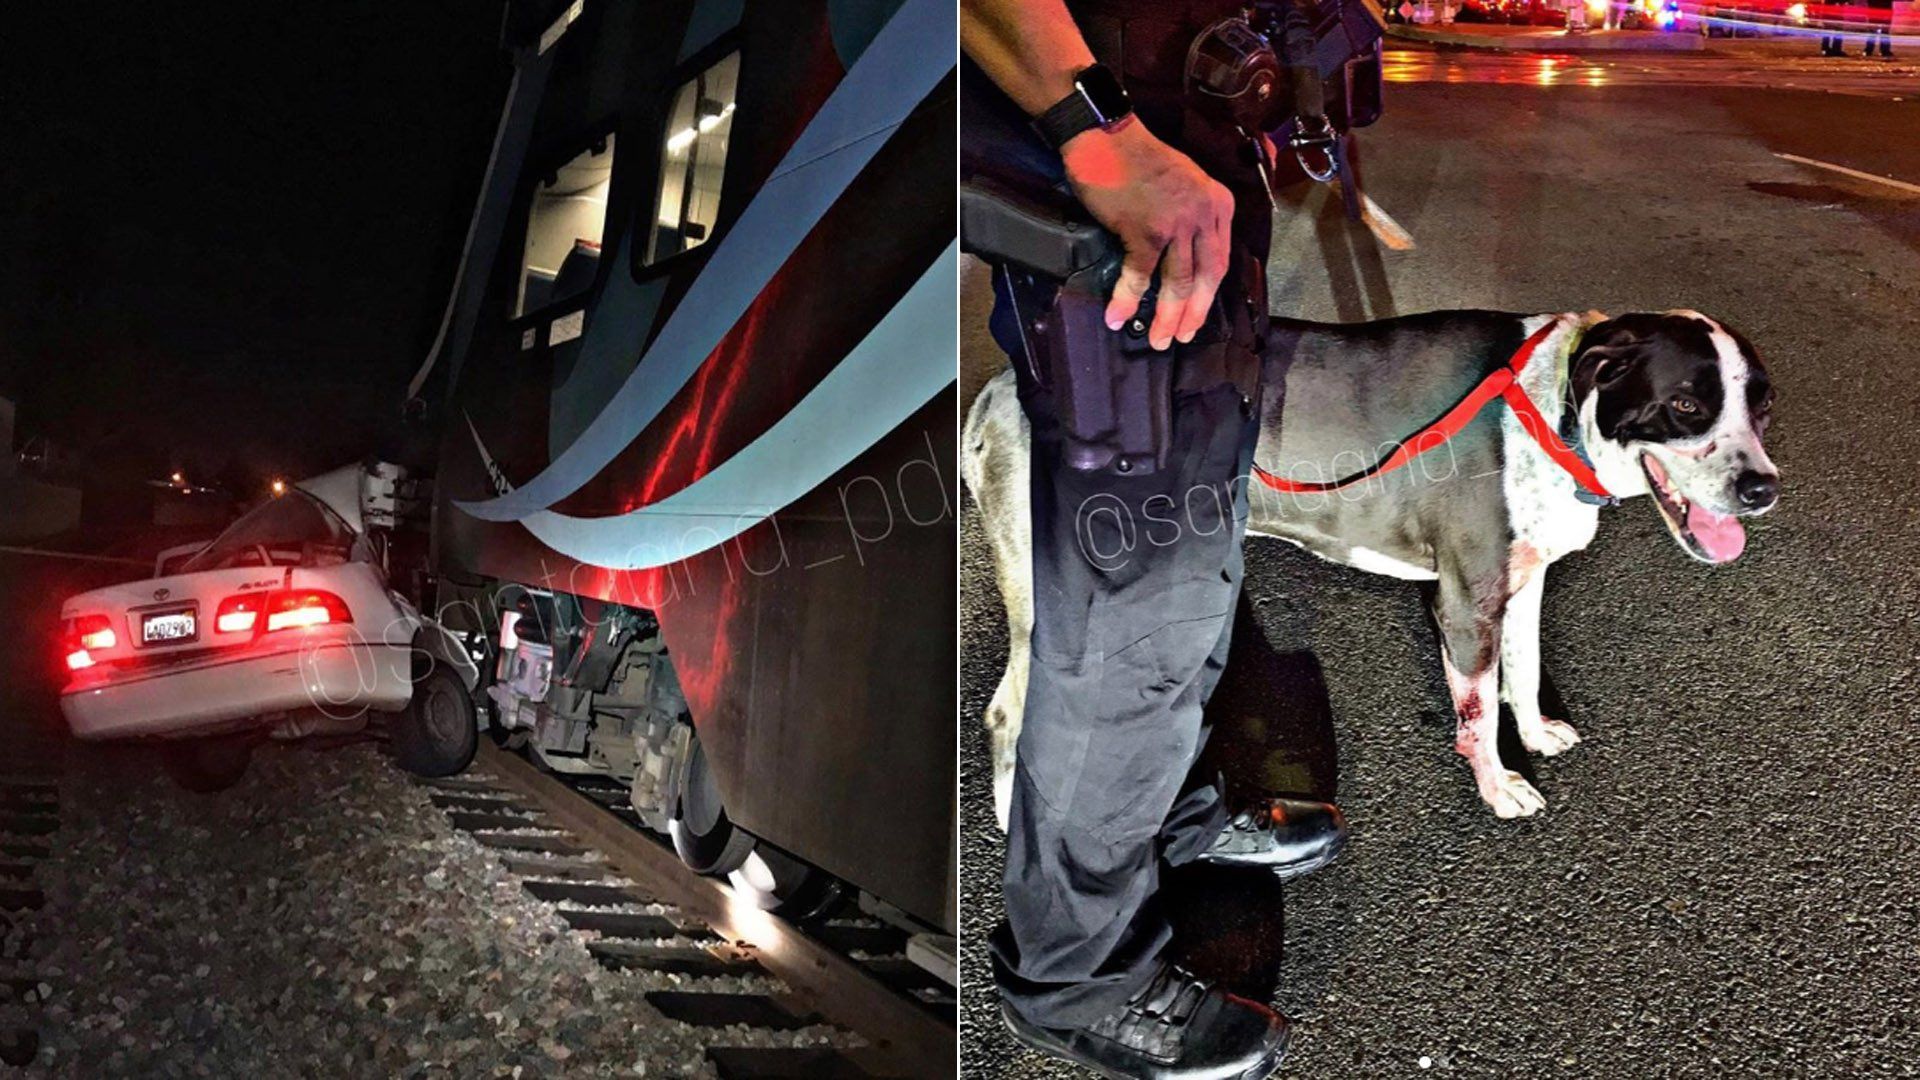 Santa Ana police released these photos of a sedan and a dog involved in a deadly train crash on Jan. 6, 2020.